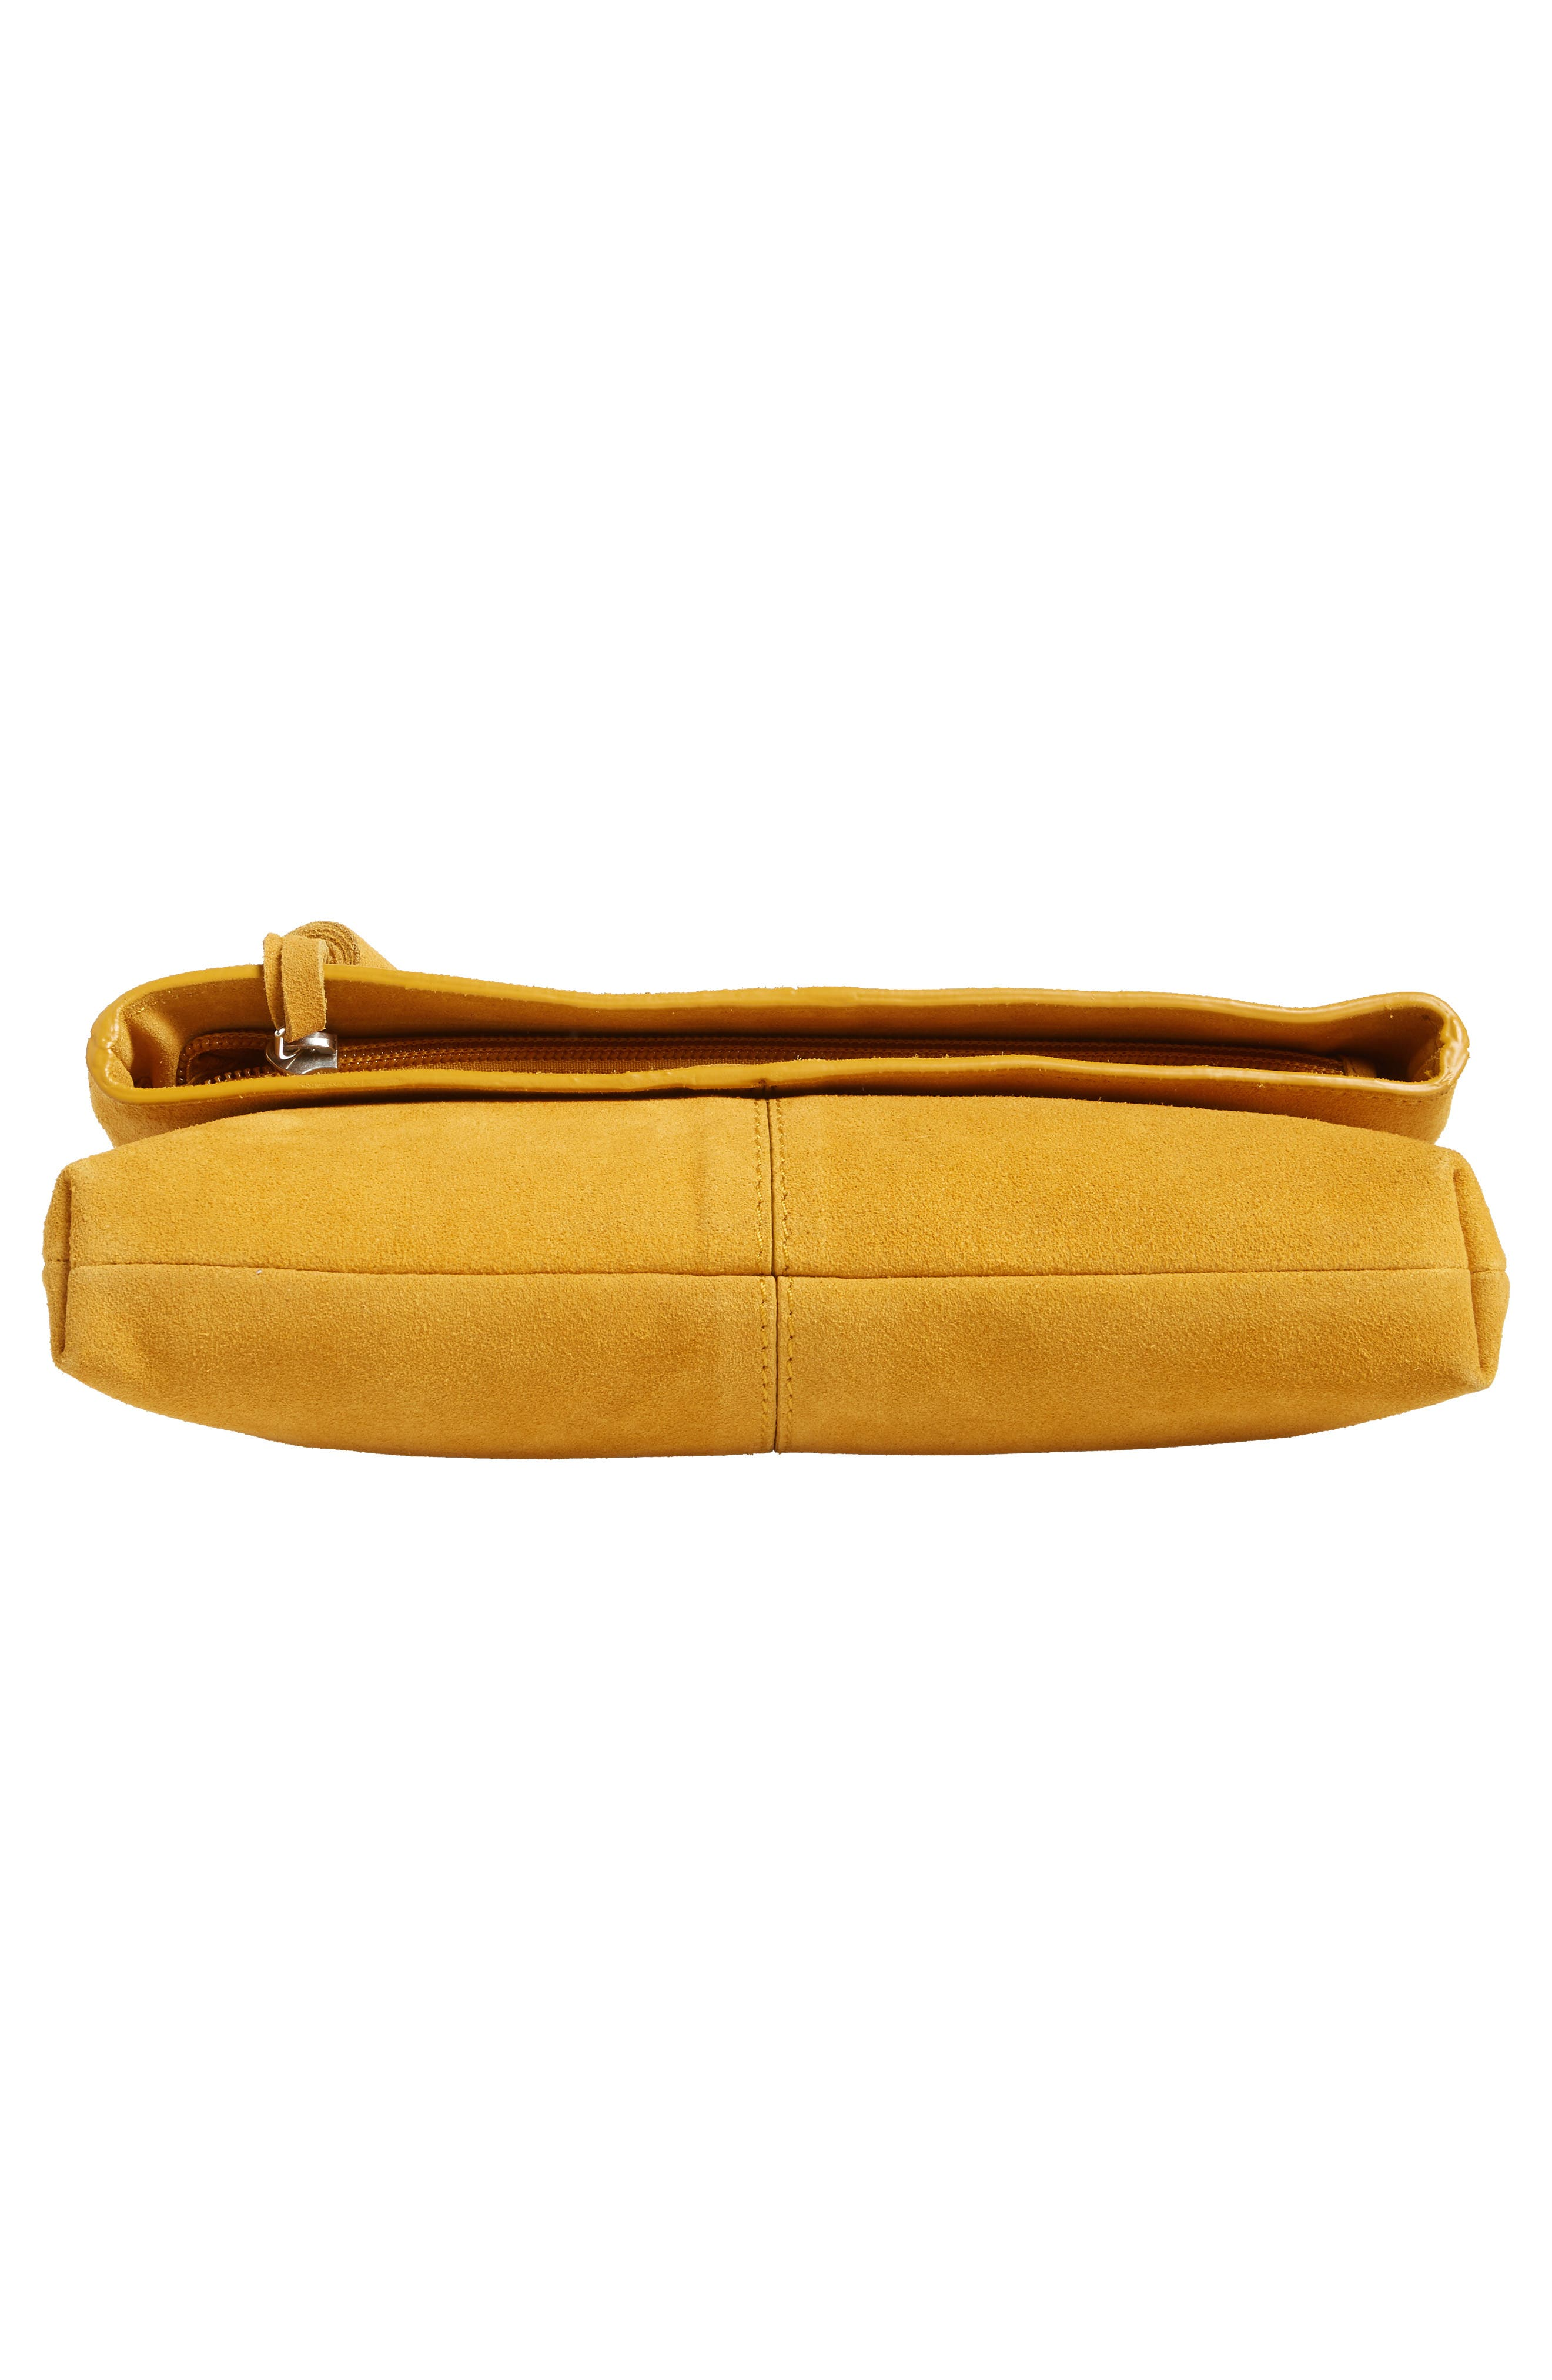 Suede Clutch,                             Alternate thumbnail 4, color,                             Mustard